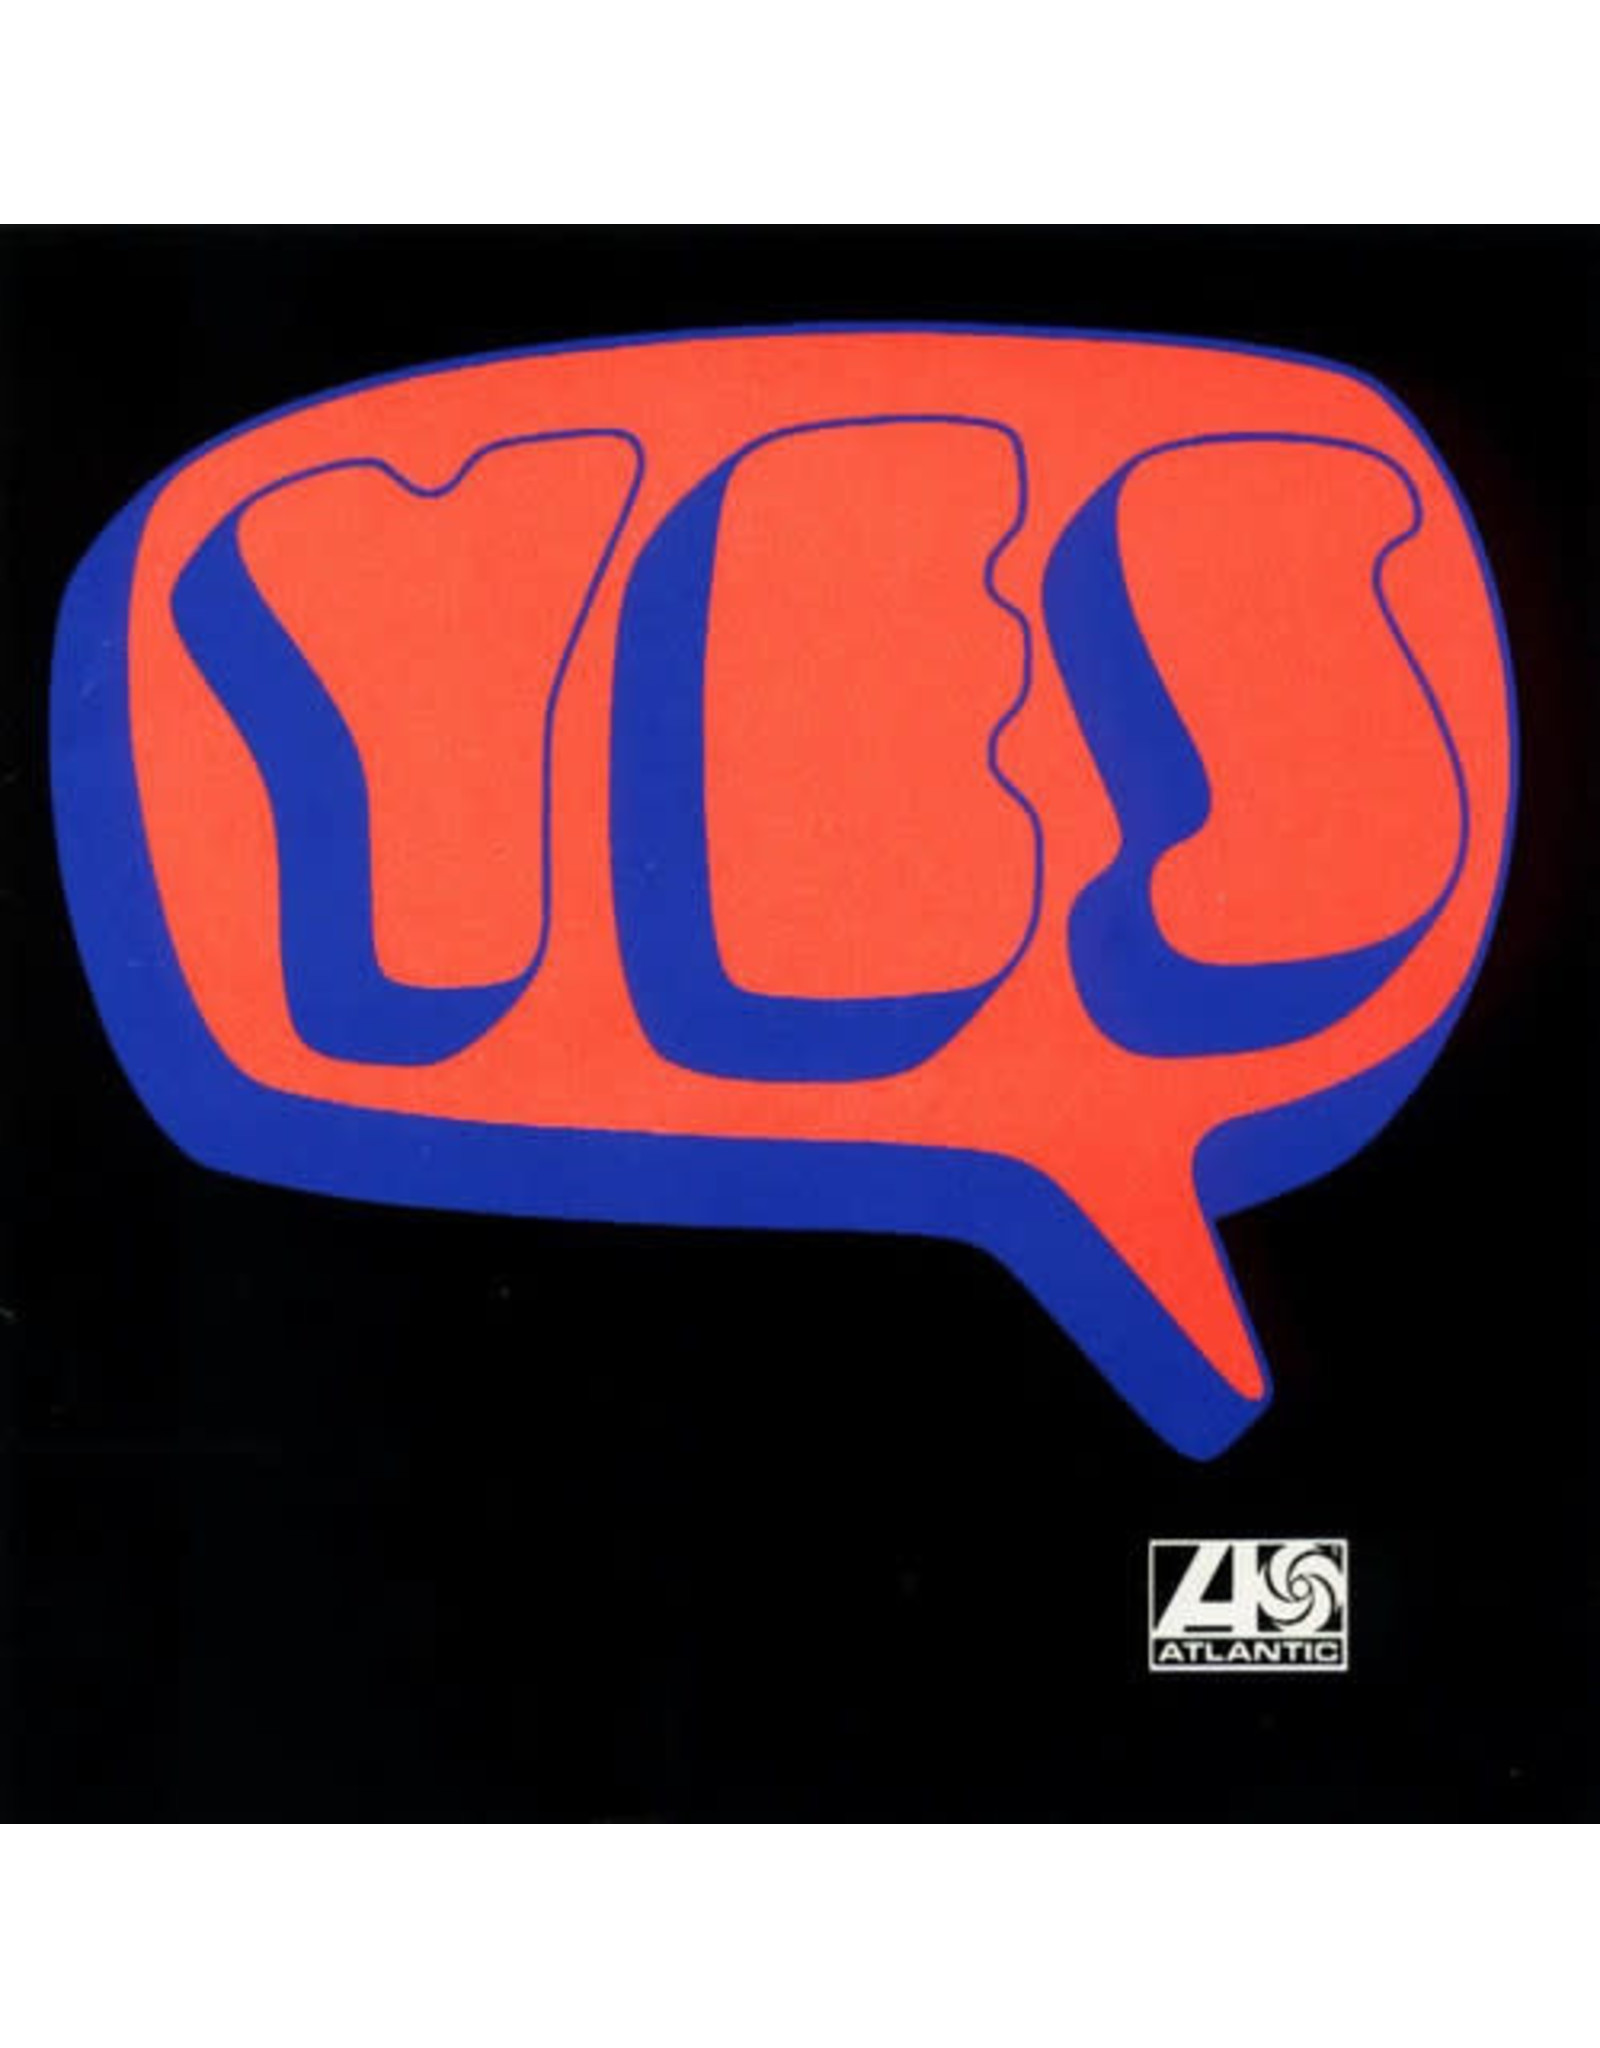 New Vinyl Yes - Yes (Expanded) 2LP